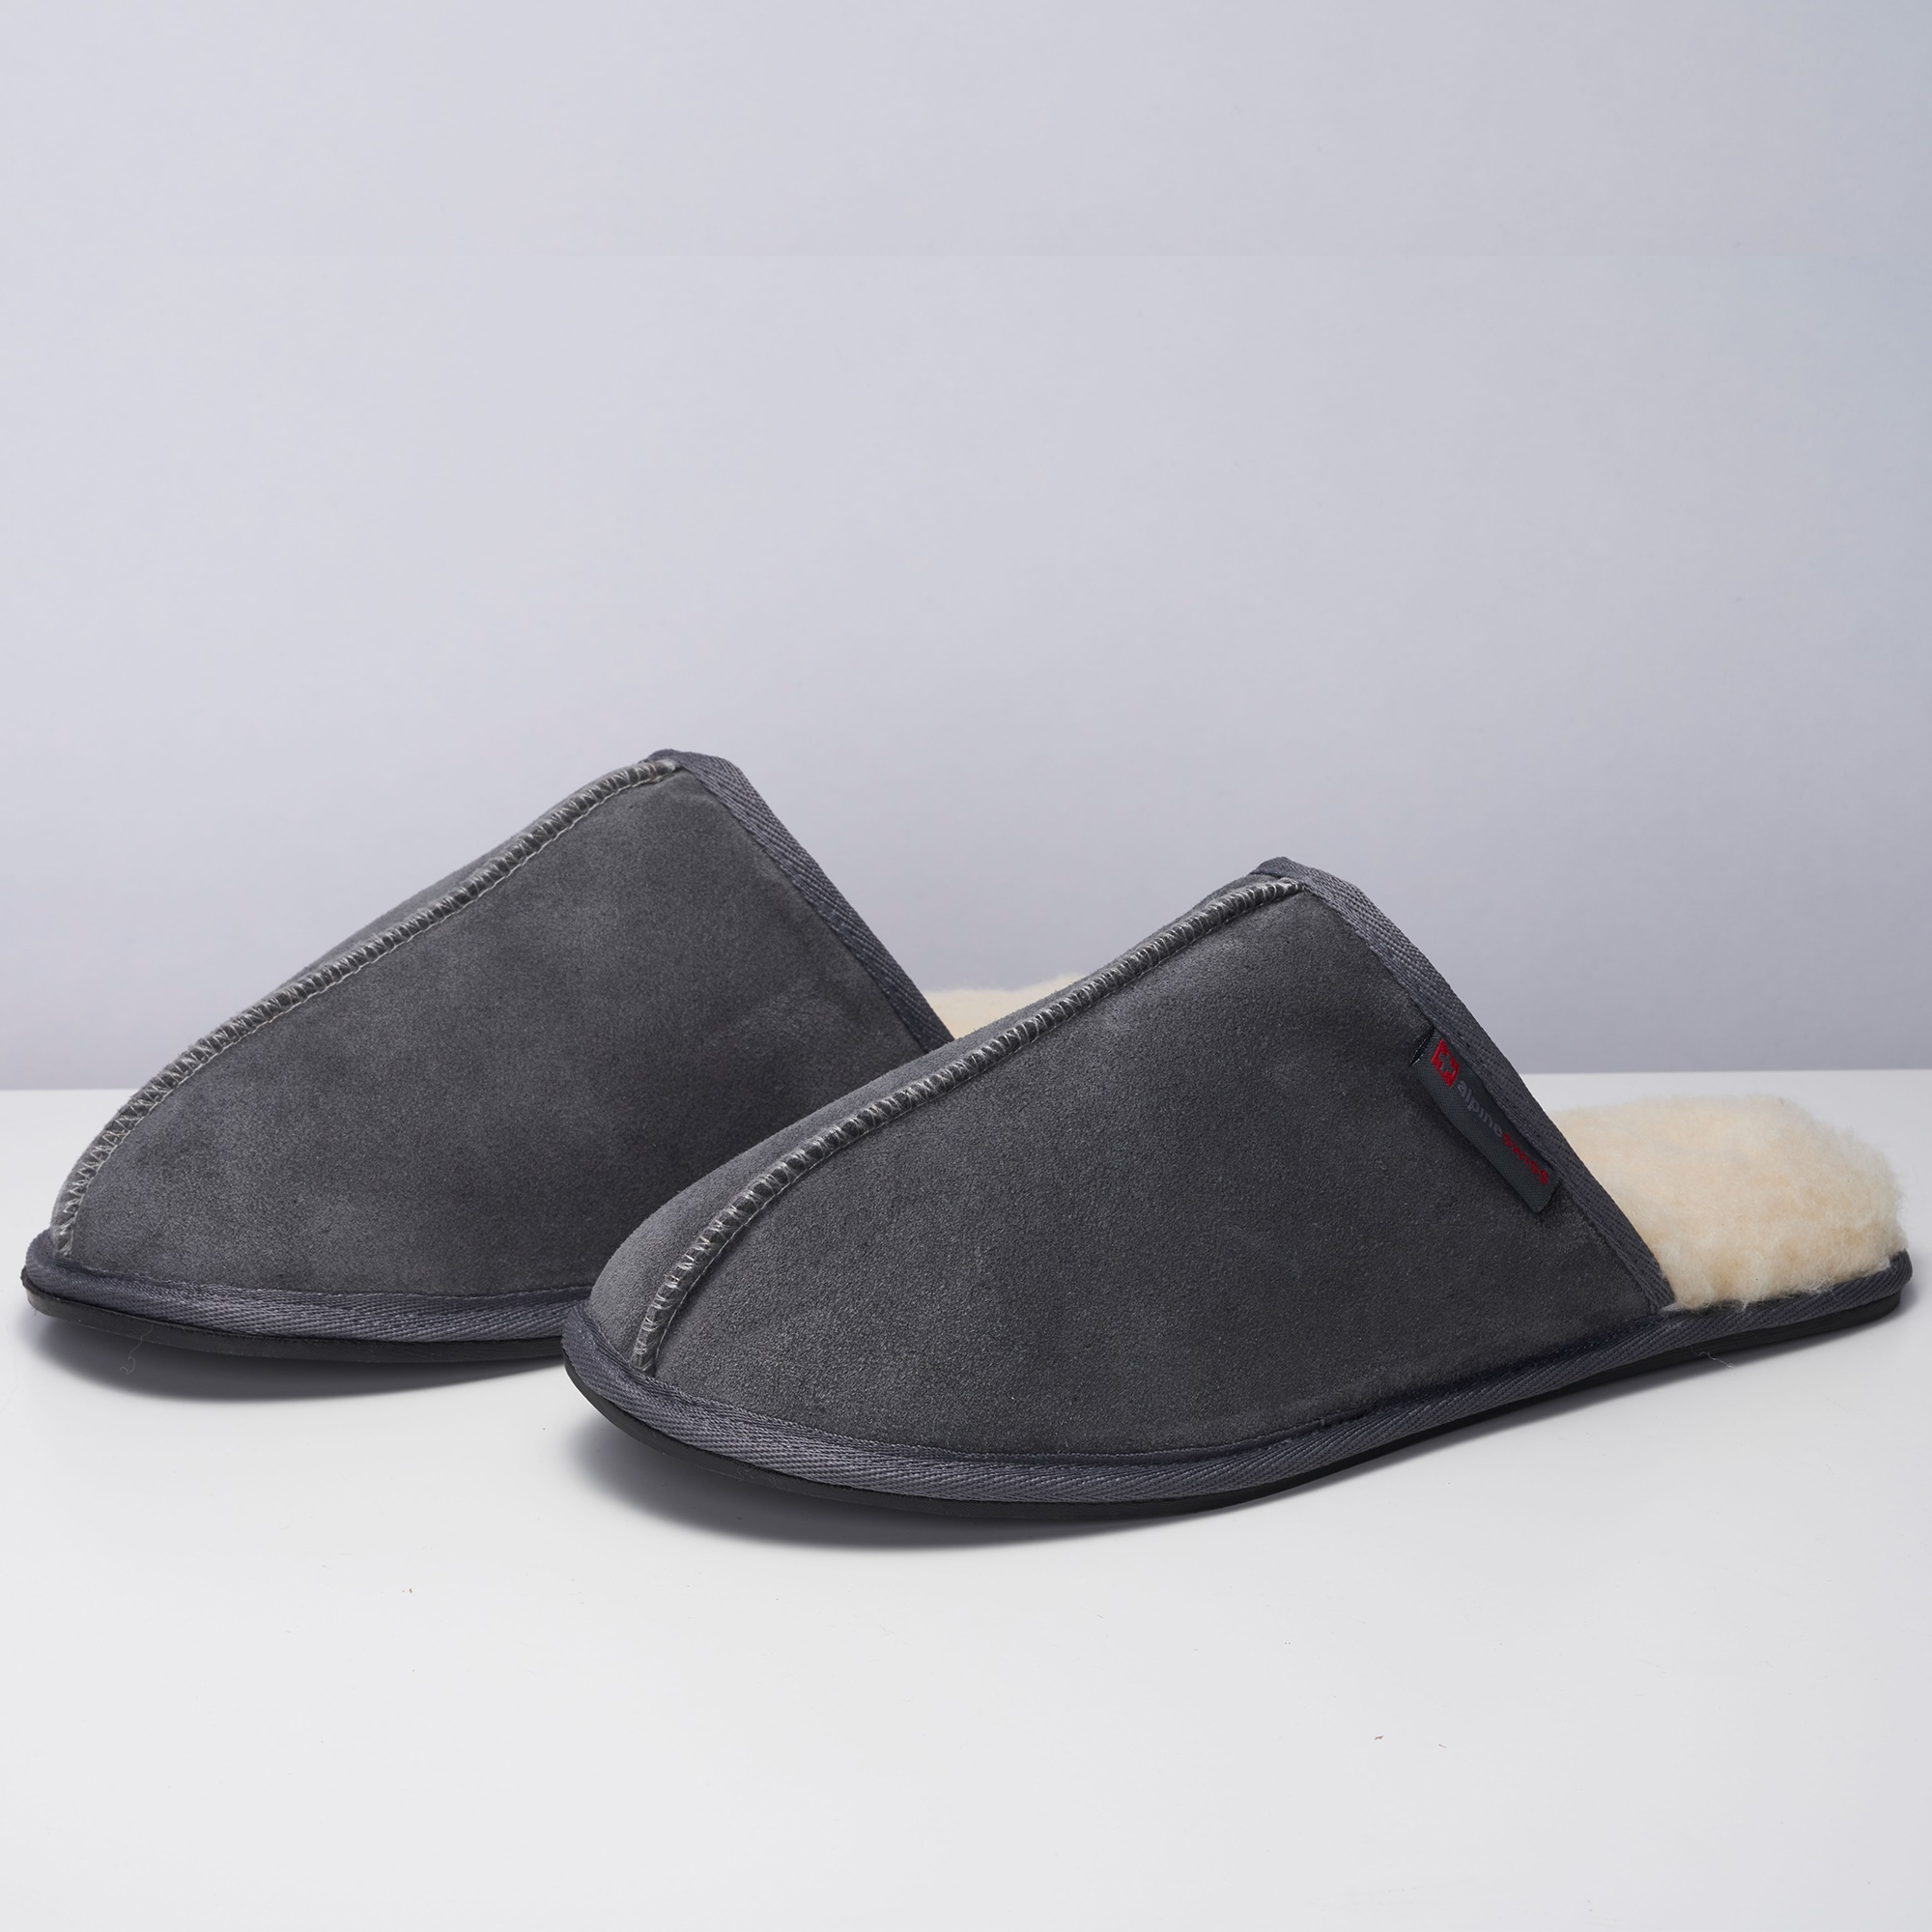 Alpine-Swiss-Mens-Suede-Memory-Foam-Scuff-Slippers-Comfort-Slip-On-House-Shoes thumbnail 29